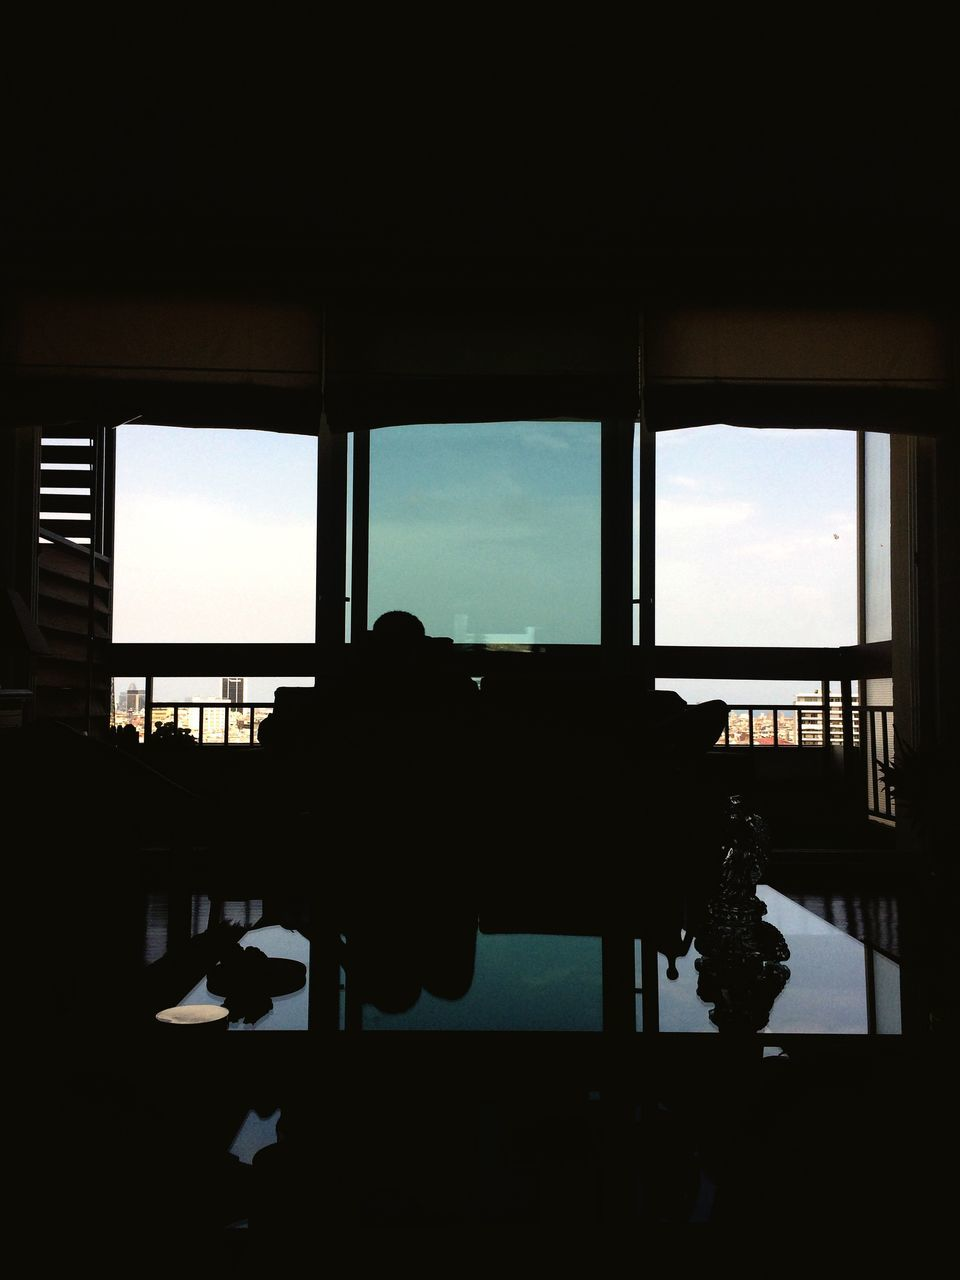 window, silhouette, indoors, sky, table, day, real people, built structure, looking through window, men, architecture, sitting, sea, one person, nature, airplane, water, people